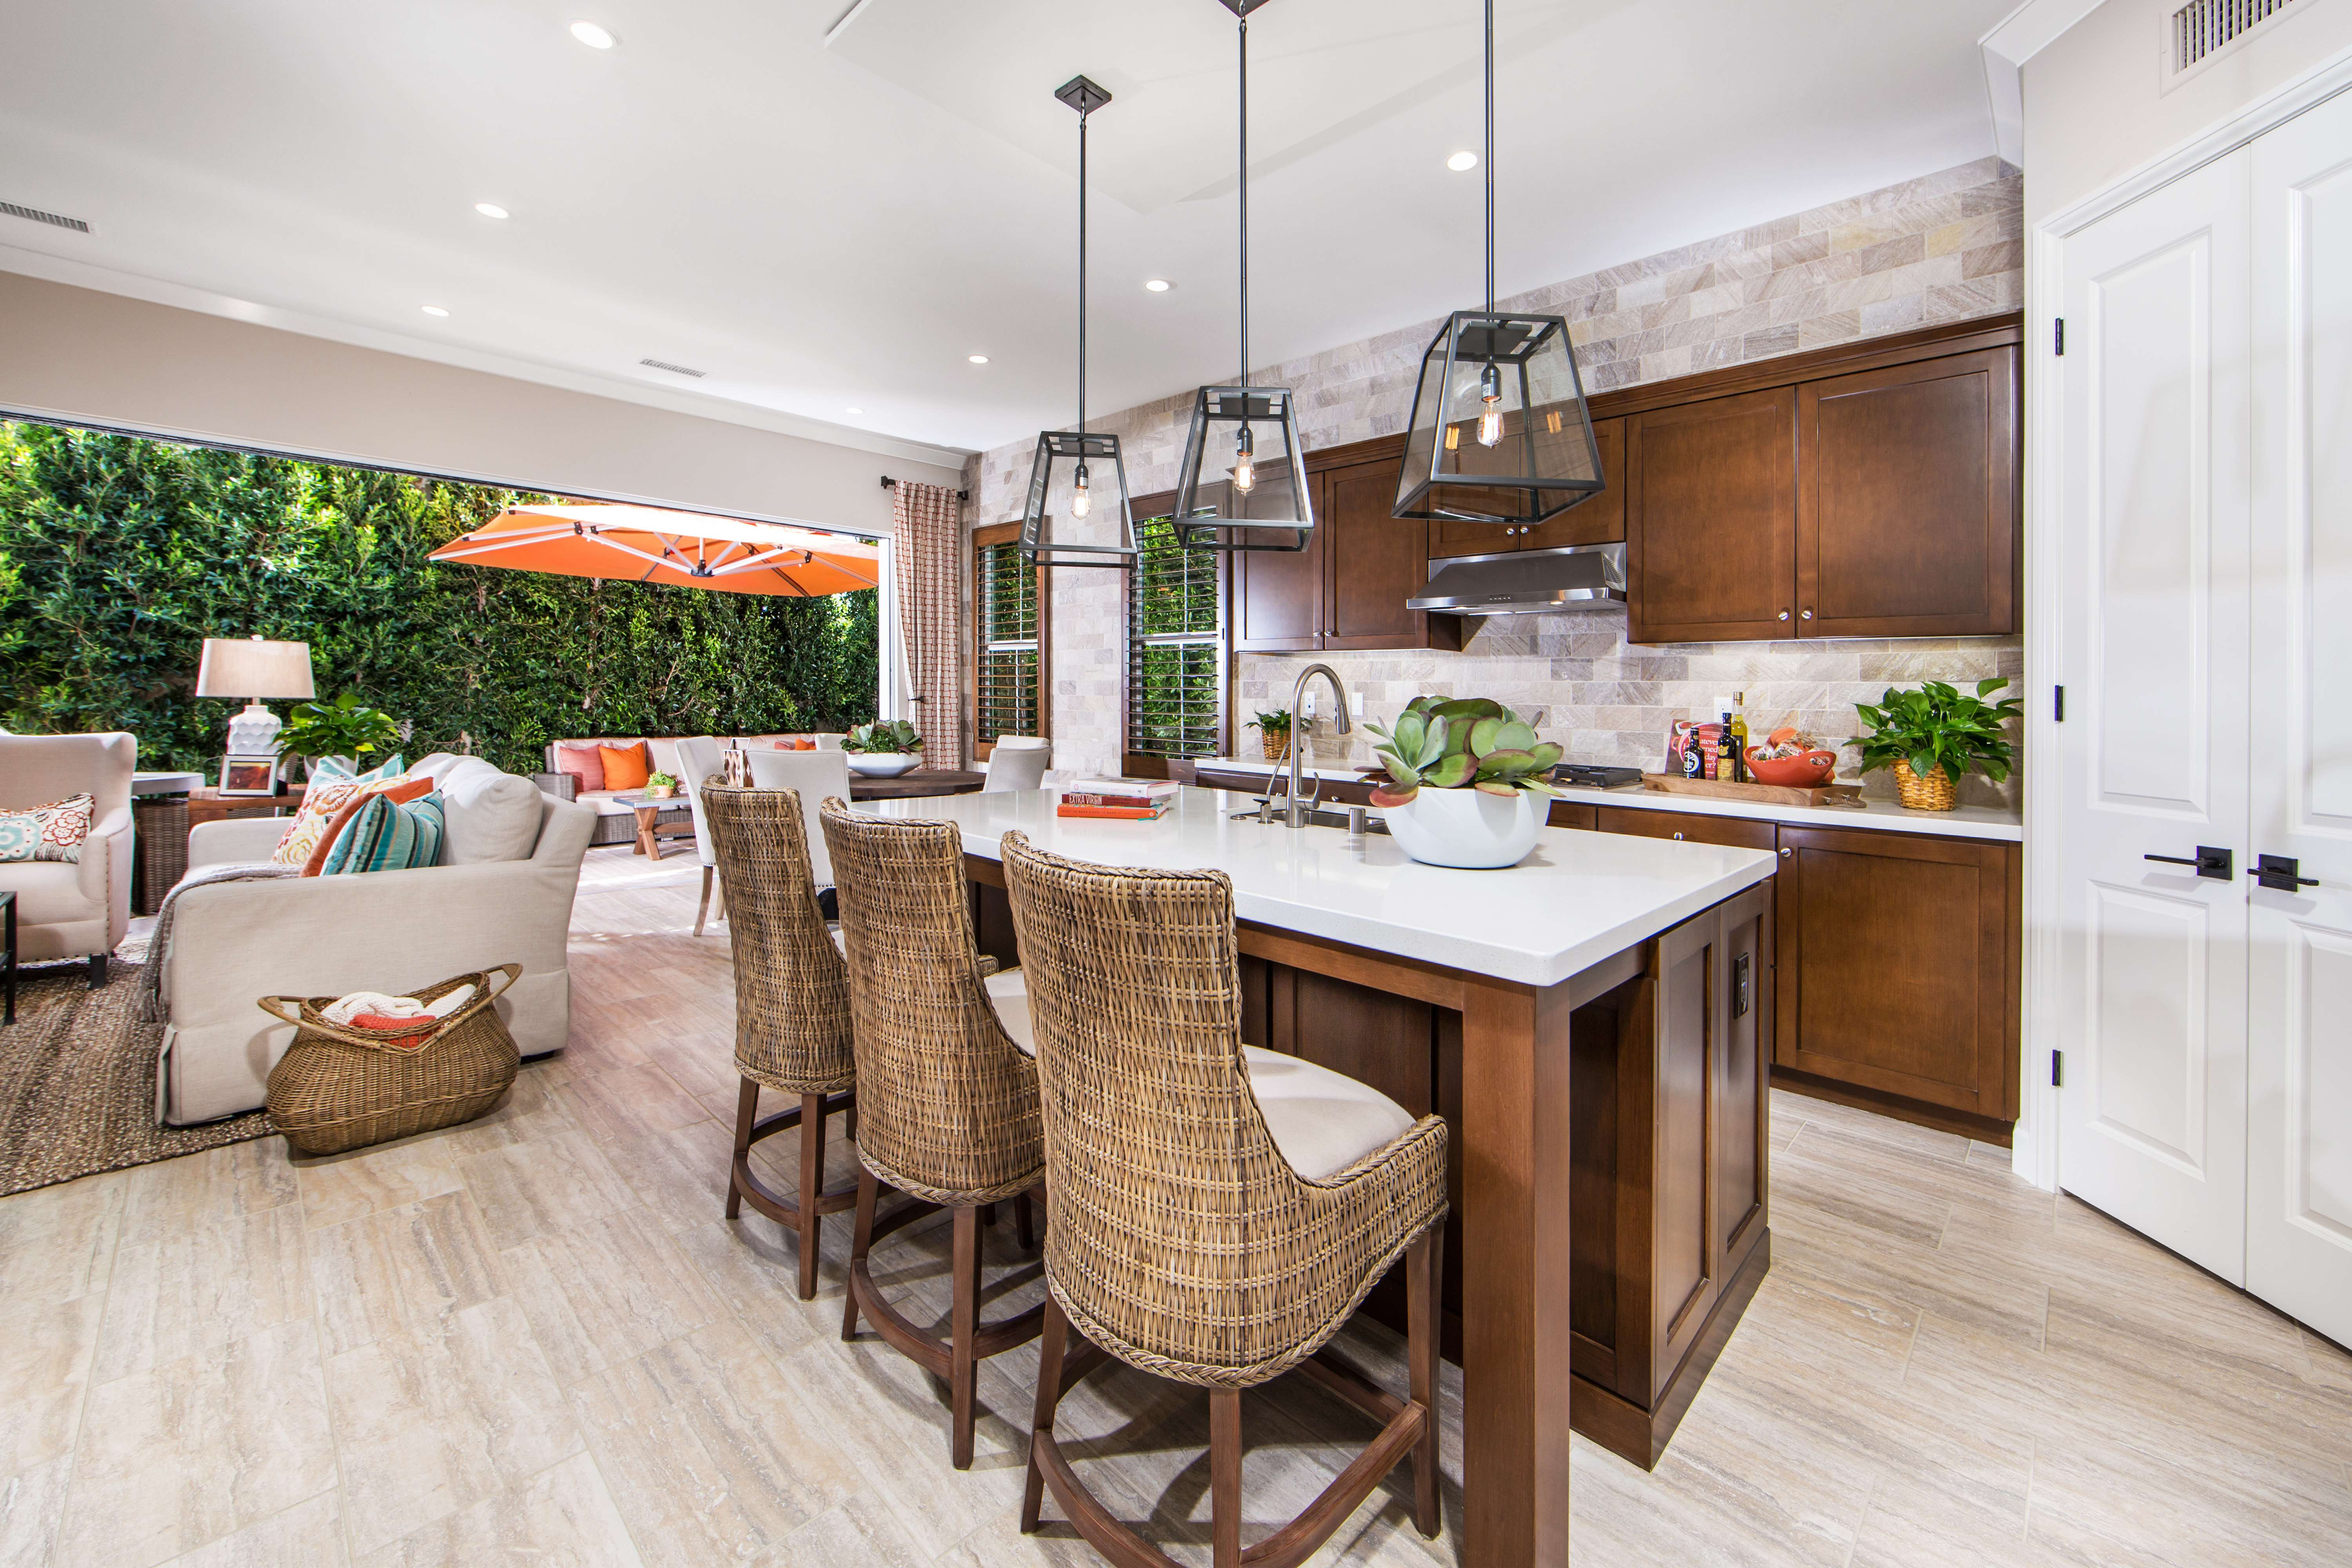 Kitchen at Marin Residence 1 in Irvine